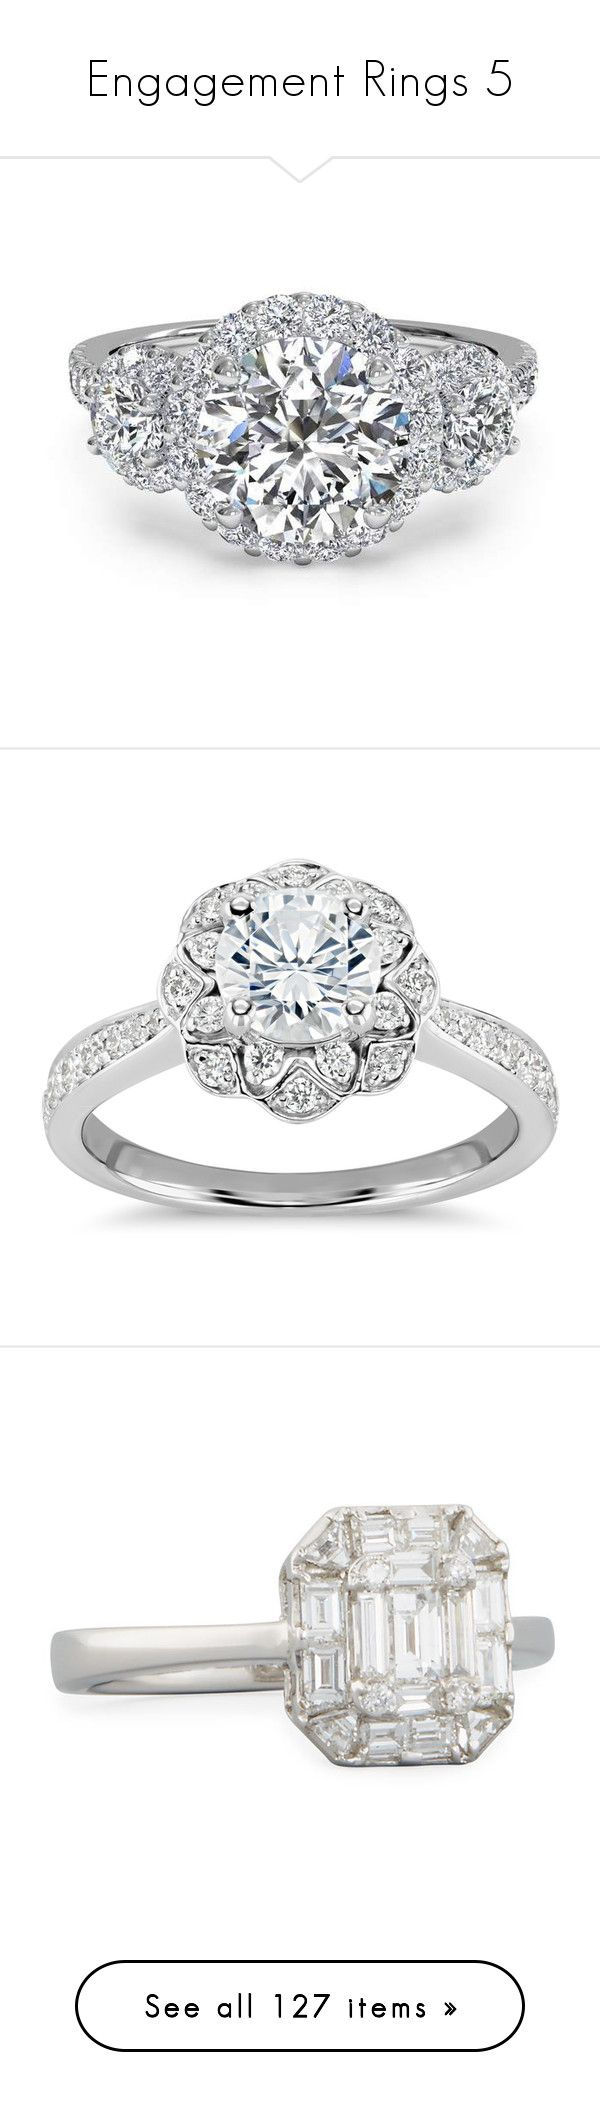 """Engagement Rings 5"" by enchantedrose33 ❤ liked on Polyvore featuring jewelry, rings, diamond rings, diamond engagement rings, round engagement rings, three stone diamond ring, 3 stone ring, accessories, engagement rings and diamond jewelry"